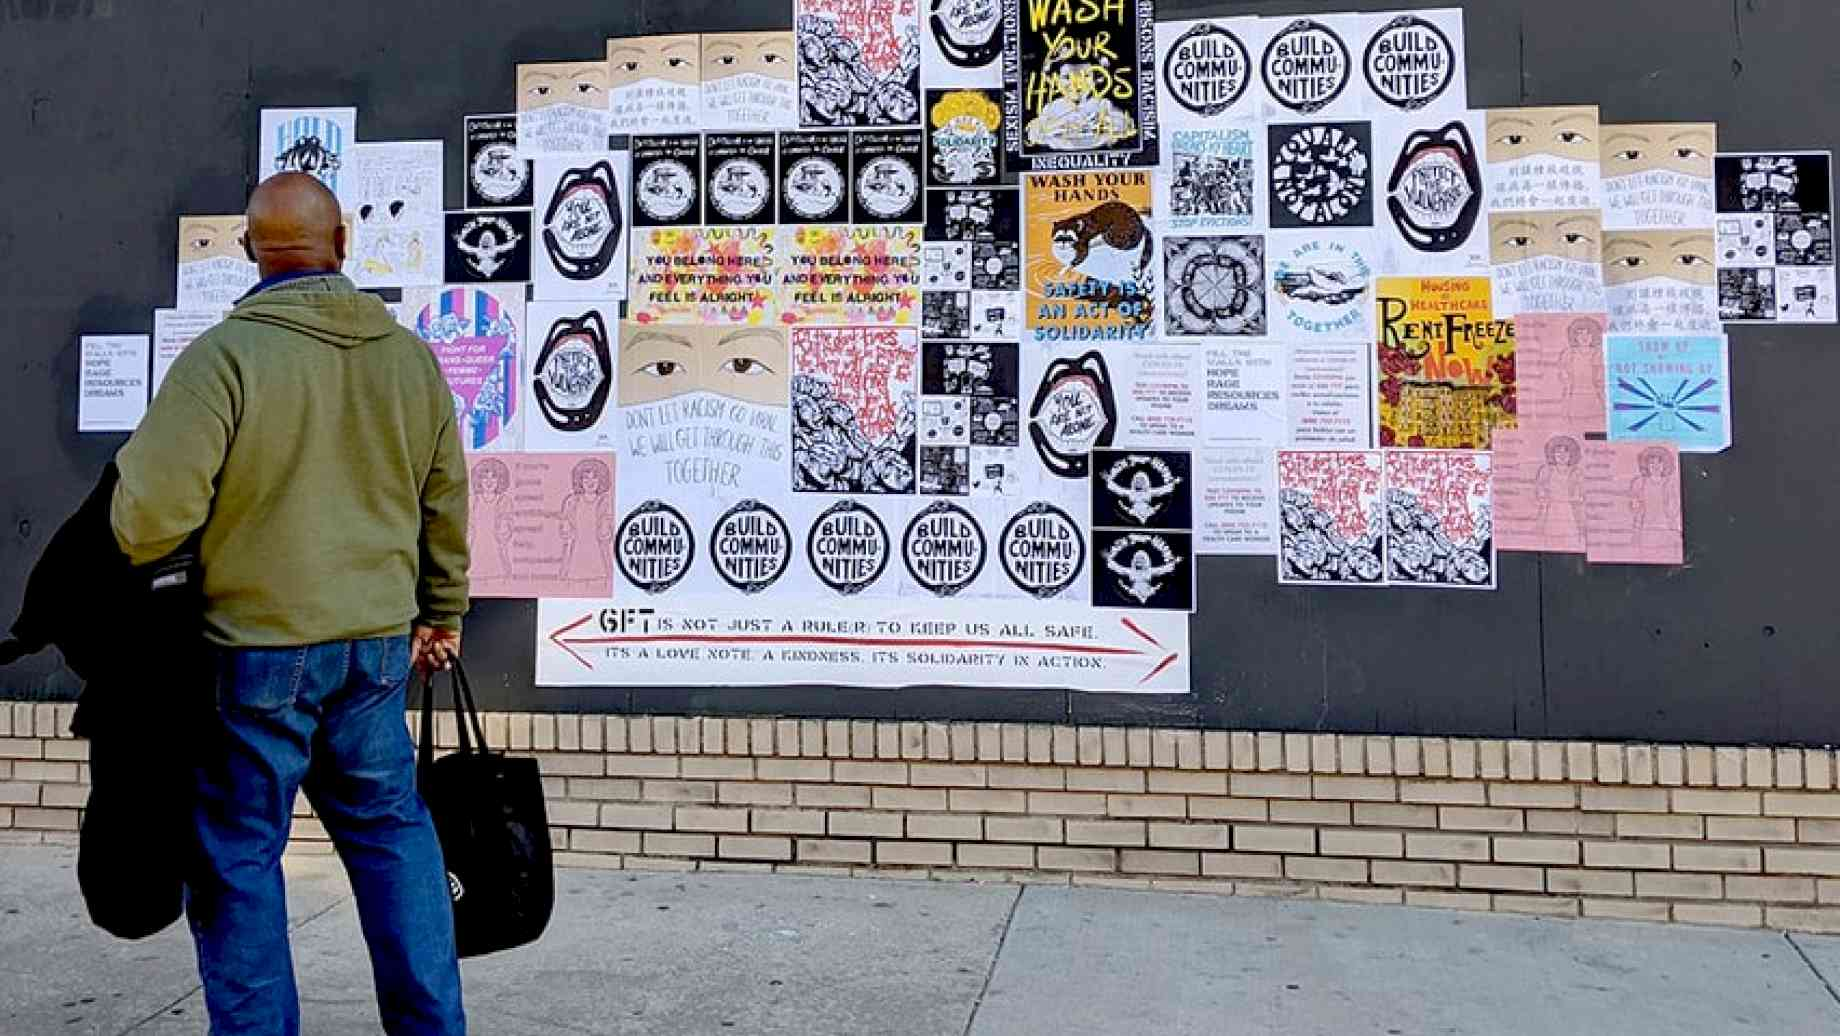 Artist Mark Strandquist and collaborators in Philadelphia are calling on fellow artists to submit their work in the context of the COVID19 crisis for distribution throughout their city. Image source: https://coverthewallswithhope.weebly.com/